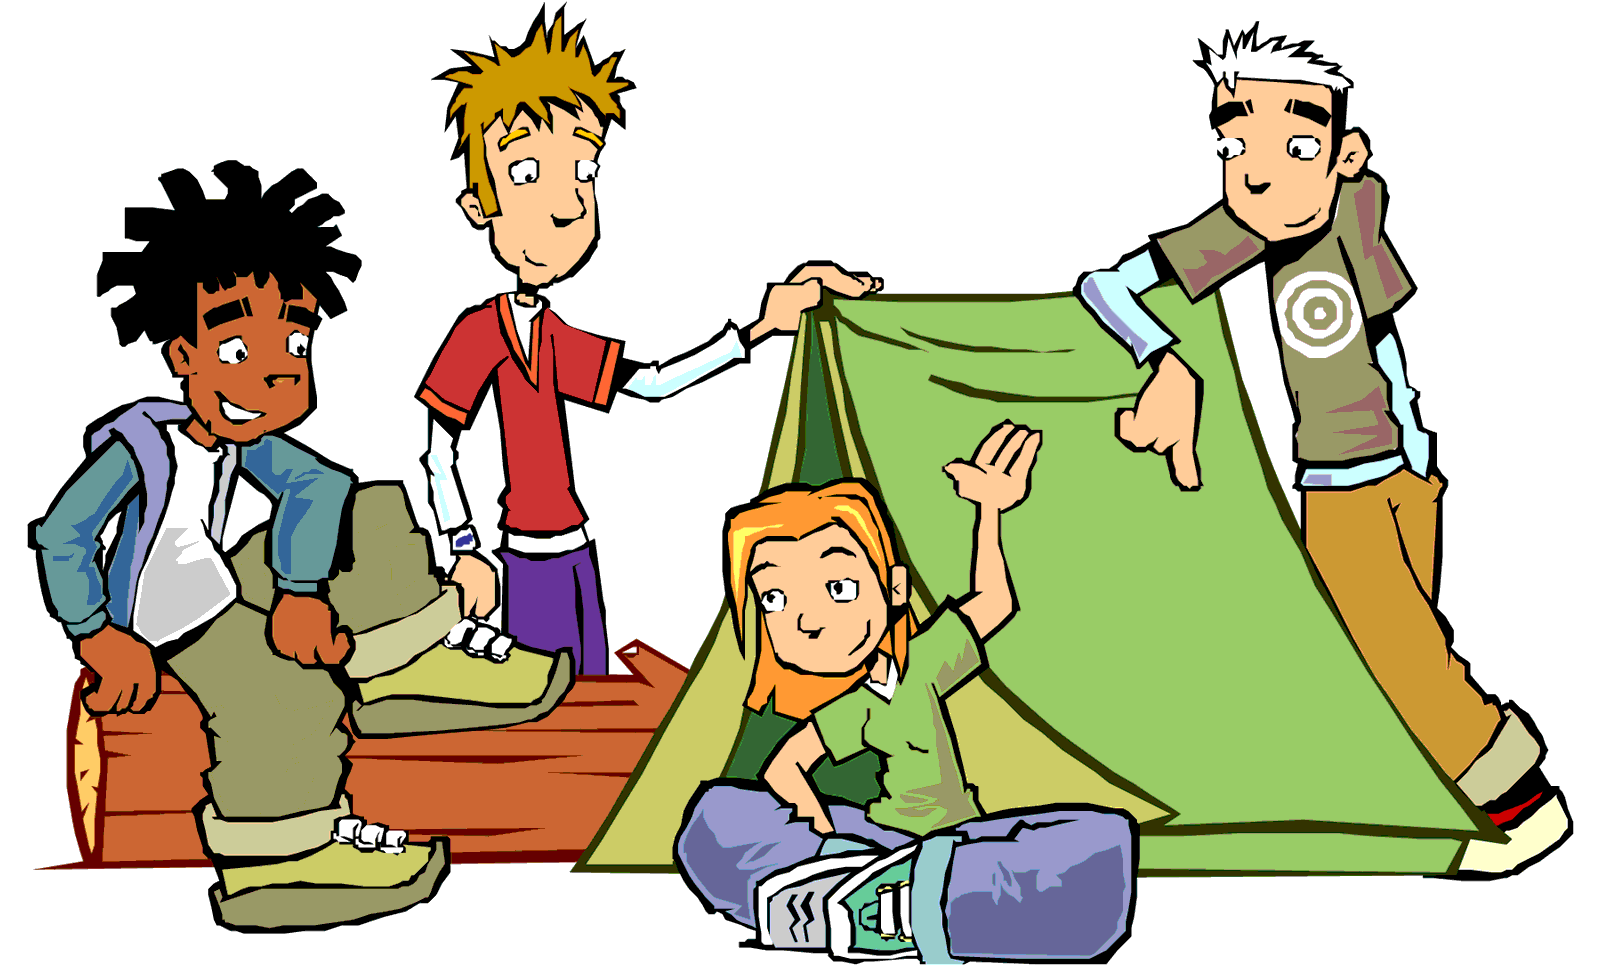 Hanging out with clipart cartoon. Camping panda free images